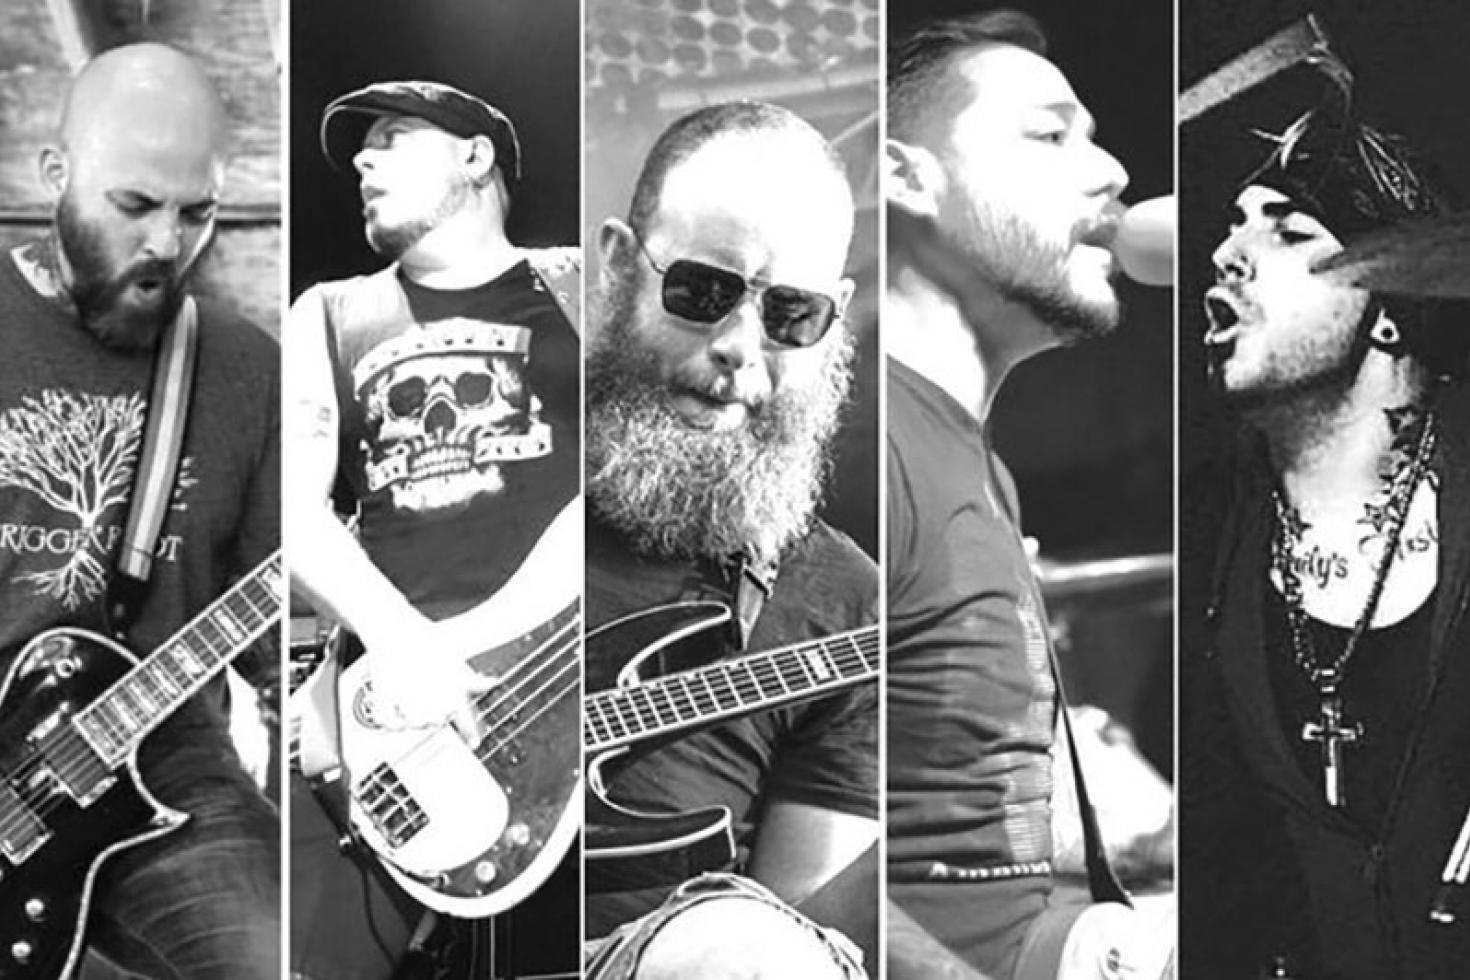 Members of The Ataris, NUFAN, Protest The Hero, Ann Beretta start new band